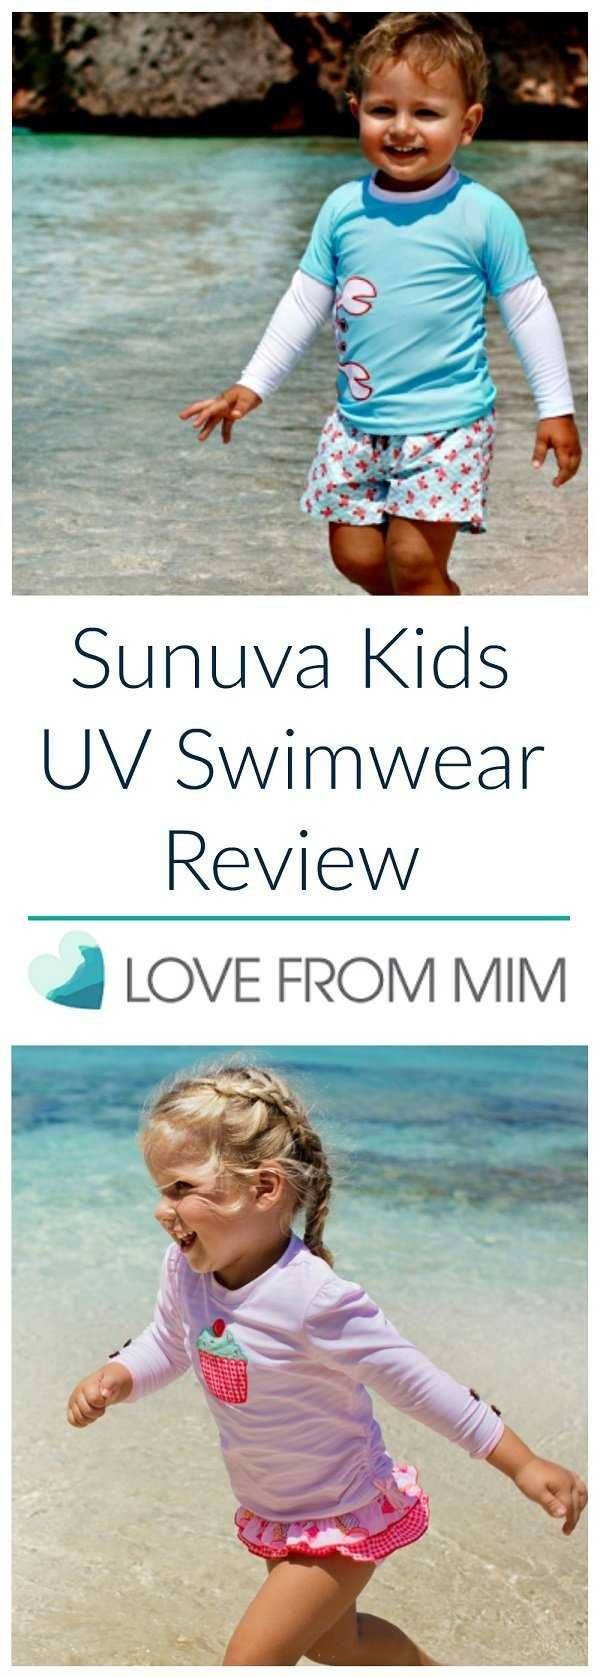 Looking for the best kids swimwear? In this Sunuva Kids UV Swimwear review, I share our honest thoughts on their range of kids and baby swimwear - Love from Mim #kidsswimwear #babyswimwear #swimwearforkids #kidsswimming #kidsstyle #kidsfashion